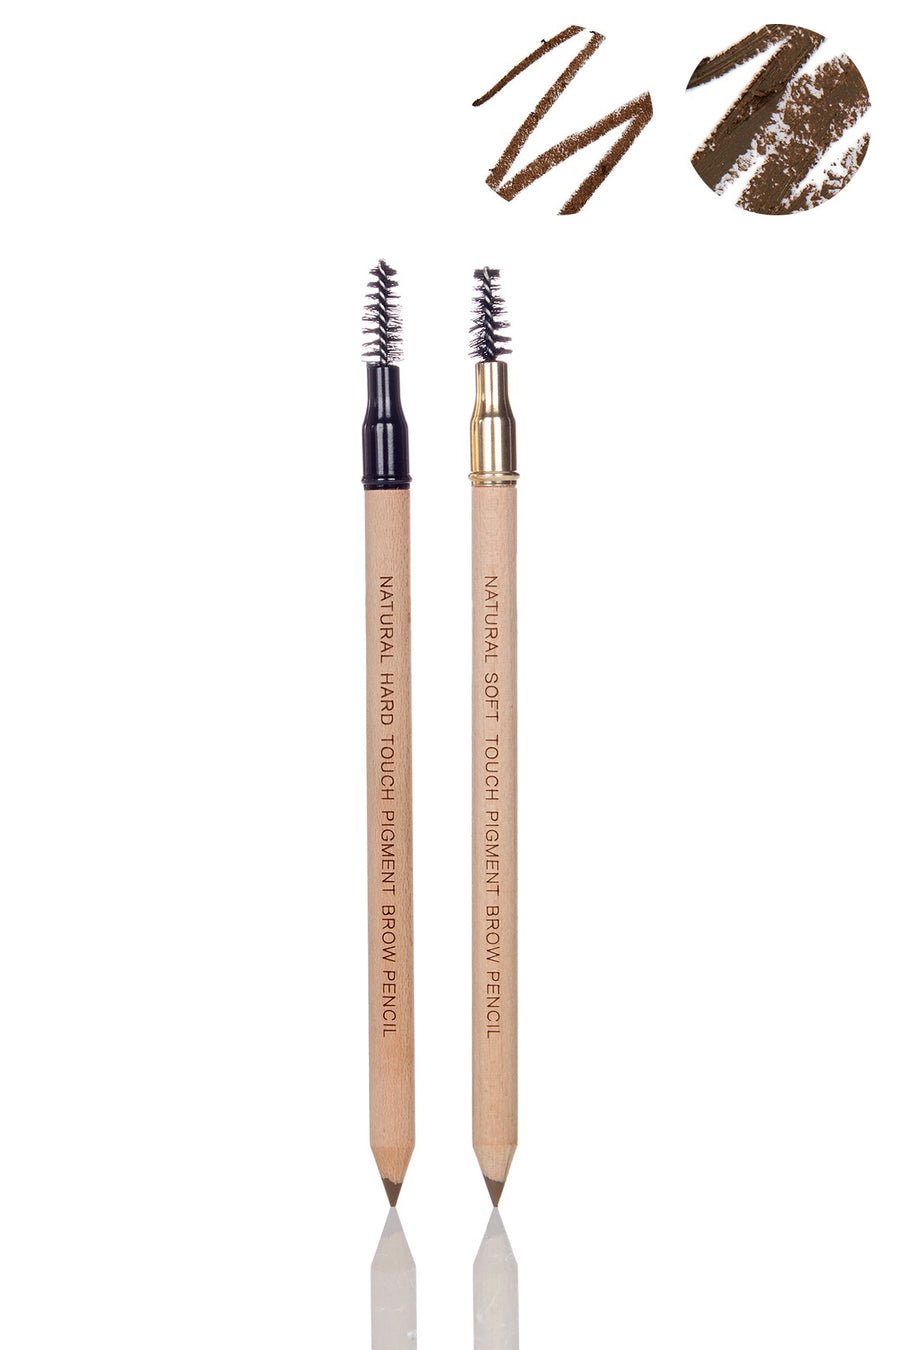 Universal Brow Definer Set of Soft Touch & Hard Touch Universal Formula Professional Eyebrow Pencil - Blend Mineral Cosmetics